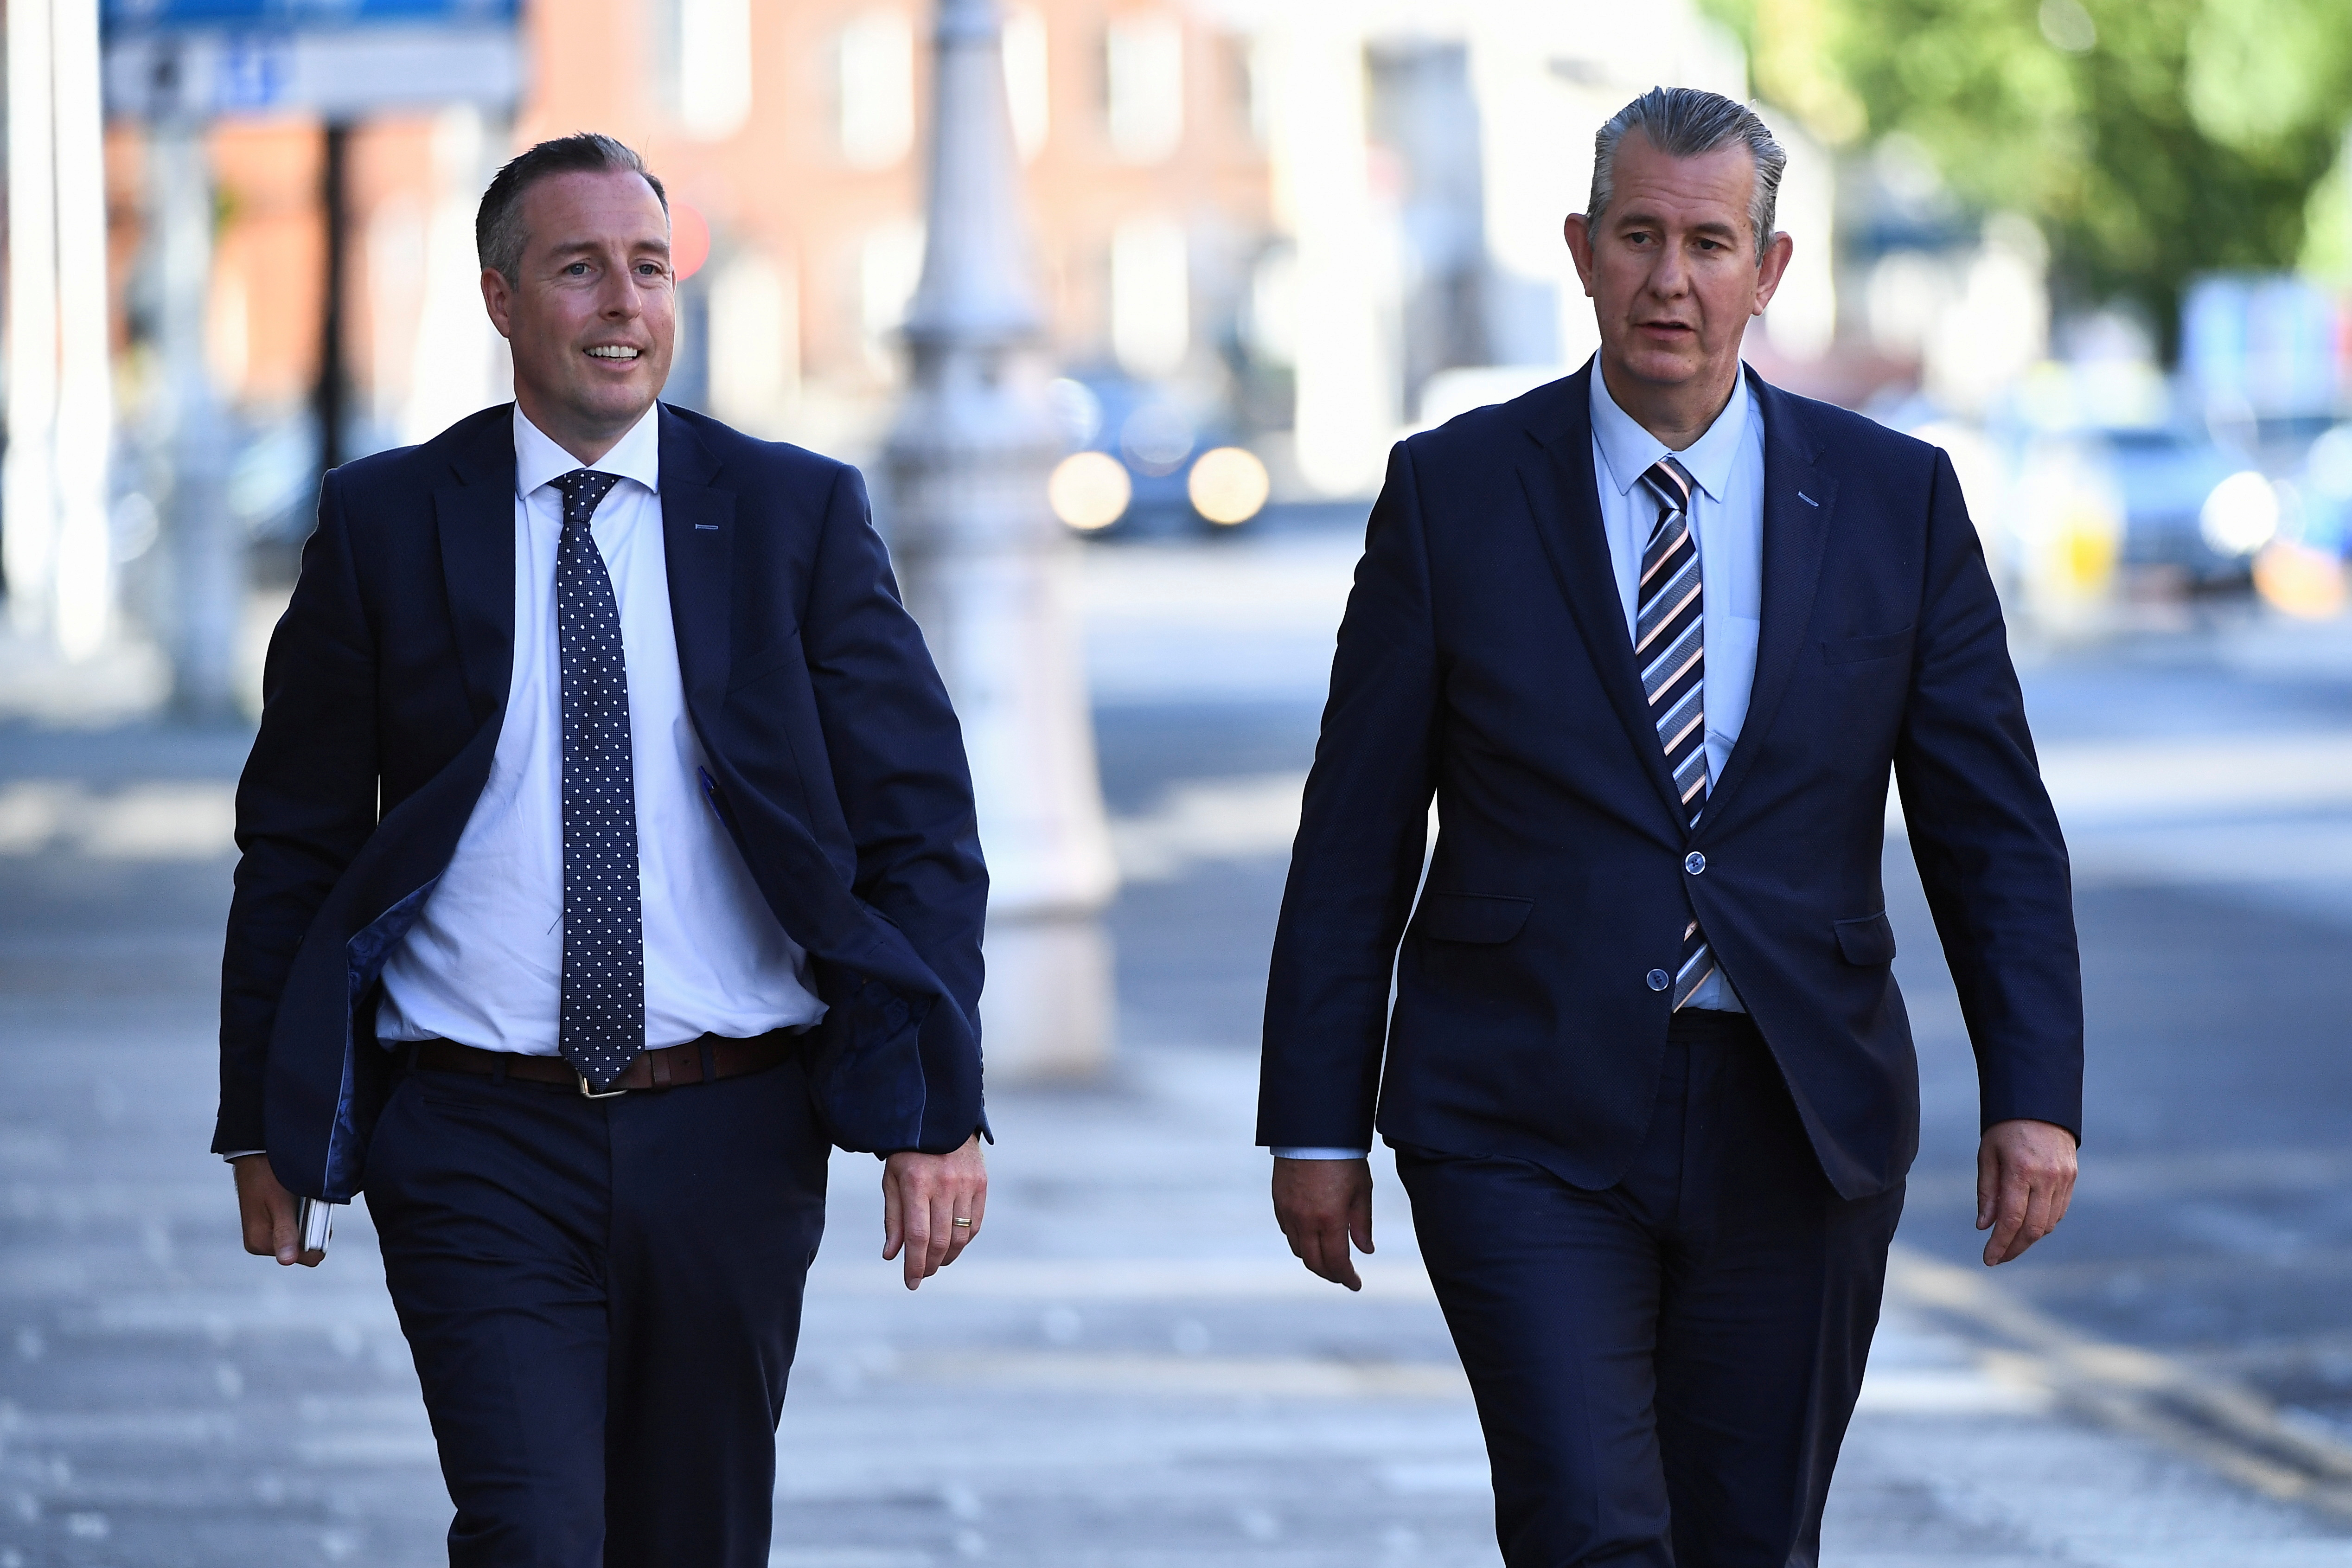 Leader of the Democratic Unionist Party (DUP) Edwin Poots and Paul Givan MLA arrive at the Government Buildings in Dublin, Ireland June 3, 2021. REUTERS/Clodagh Kilcoyne/File Photo